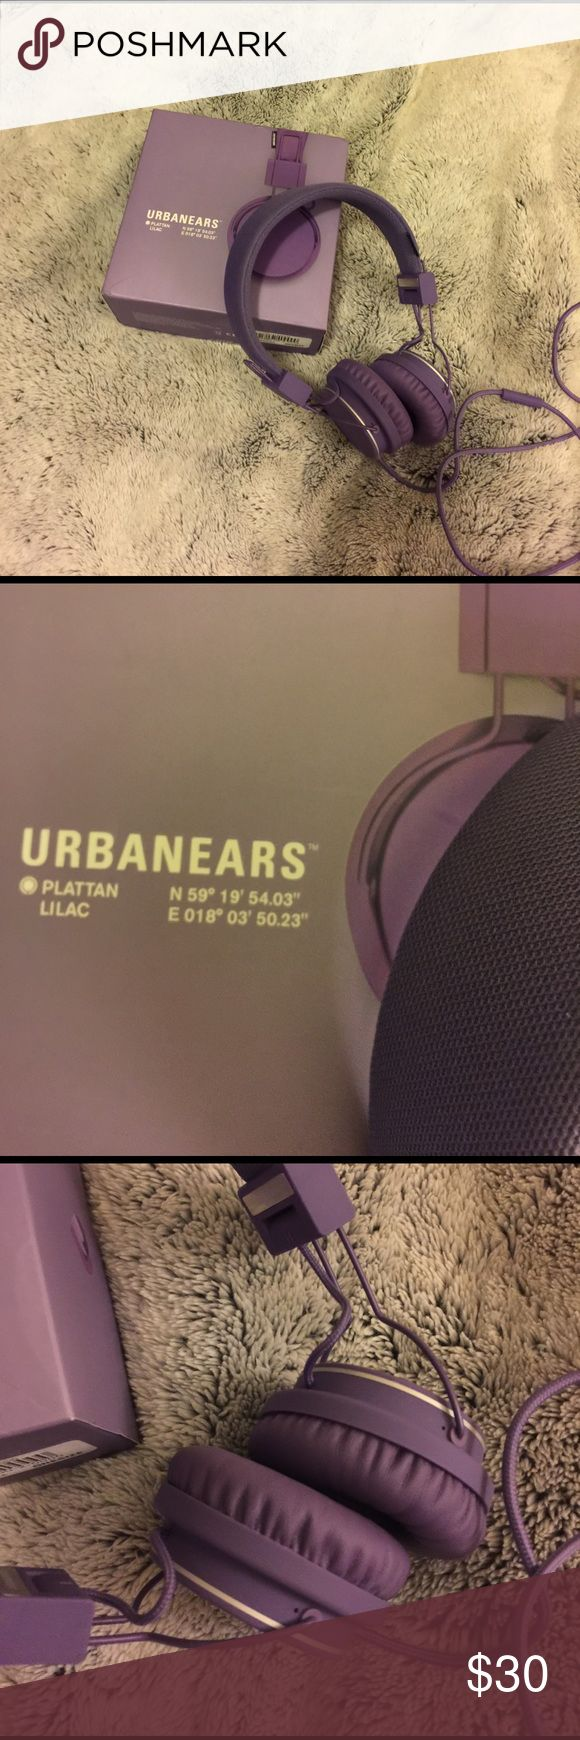 Urbanears Plattan Headphones in Lilac Urbanears Plattan headphones. New in box. Lilac color. These are super comfortable headphones that sell for $50 at Macy's Urbanears Other